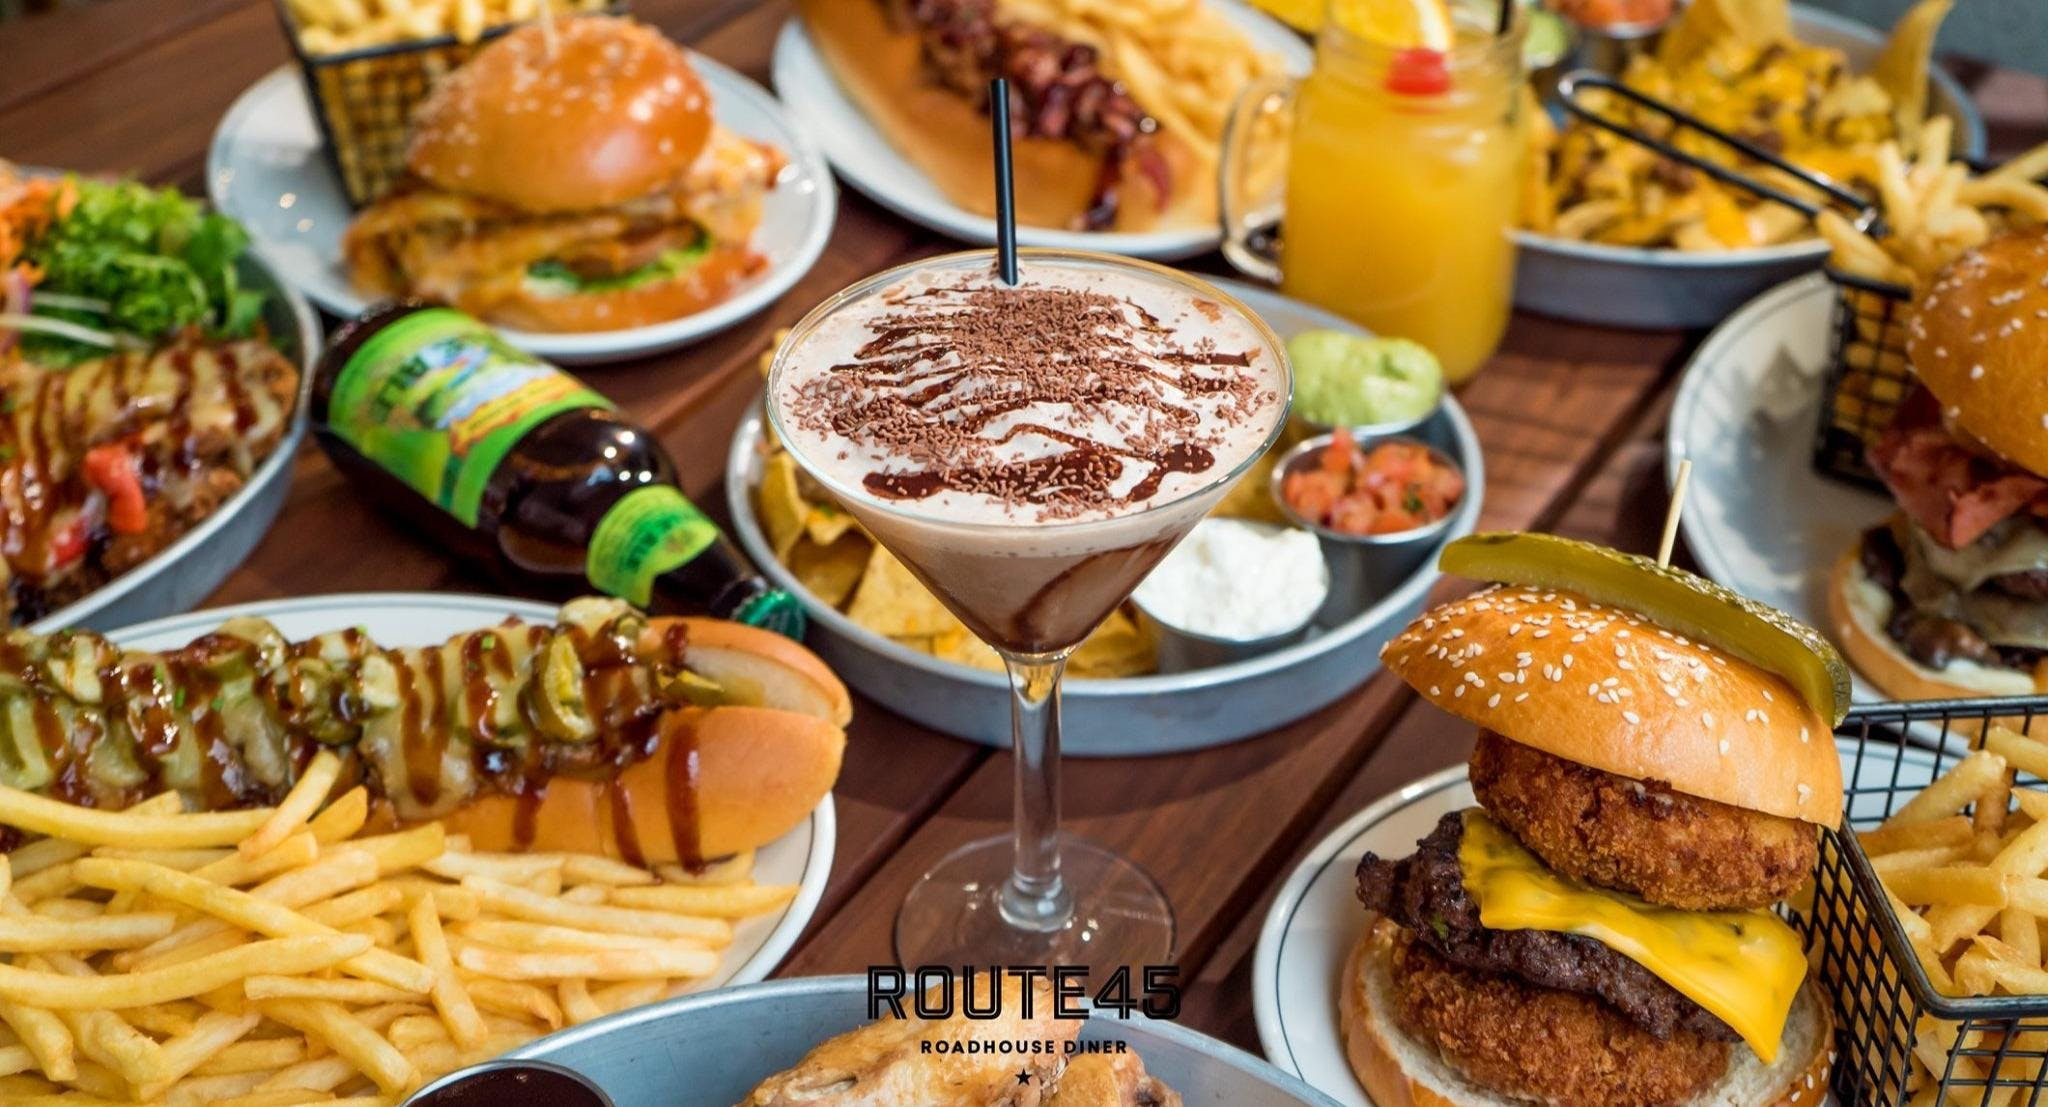 Route 45 Roadhouse Diner - Forest Hill